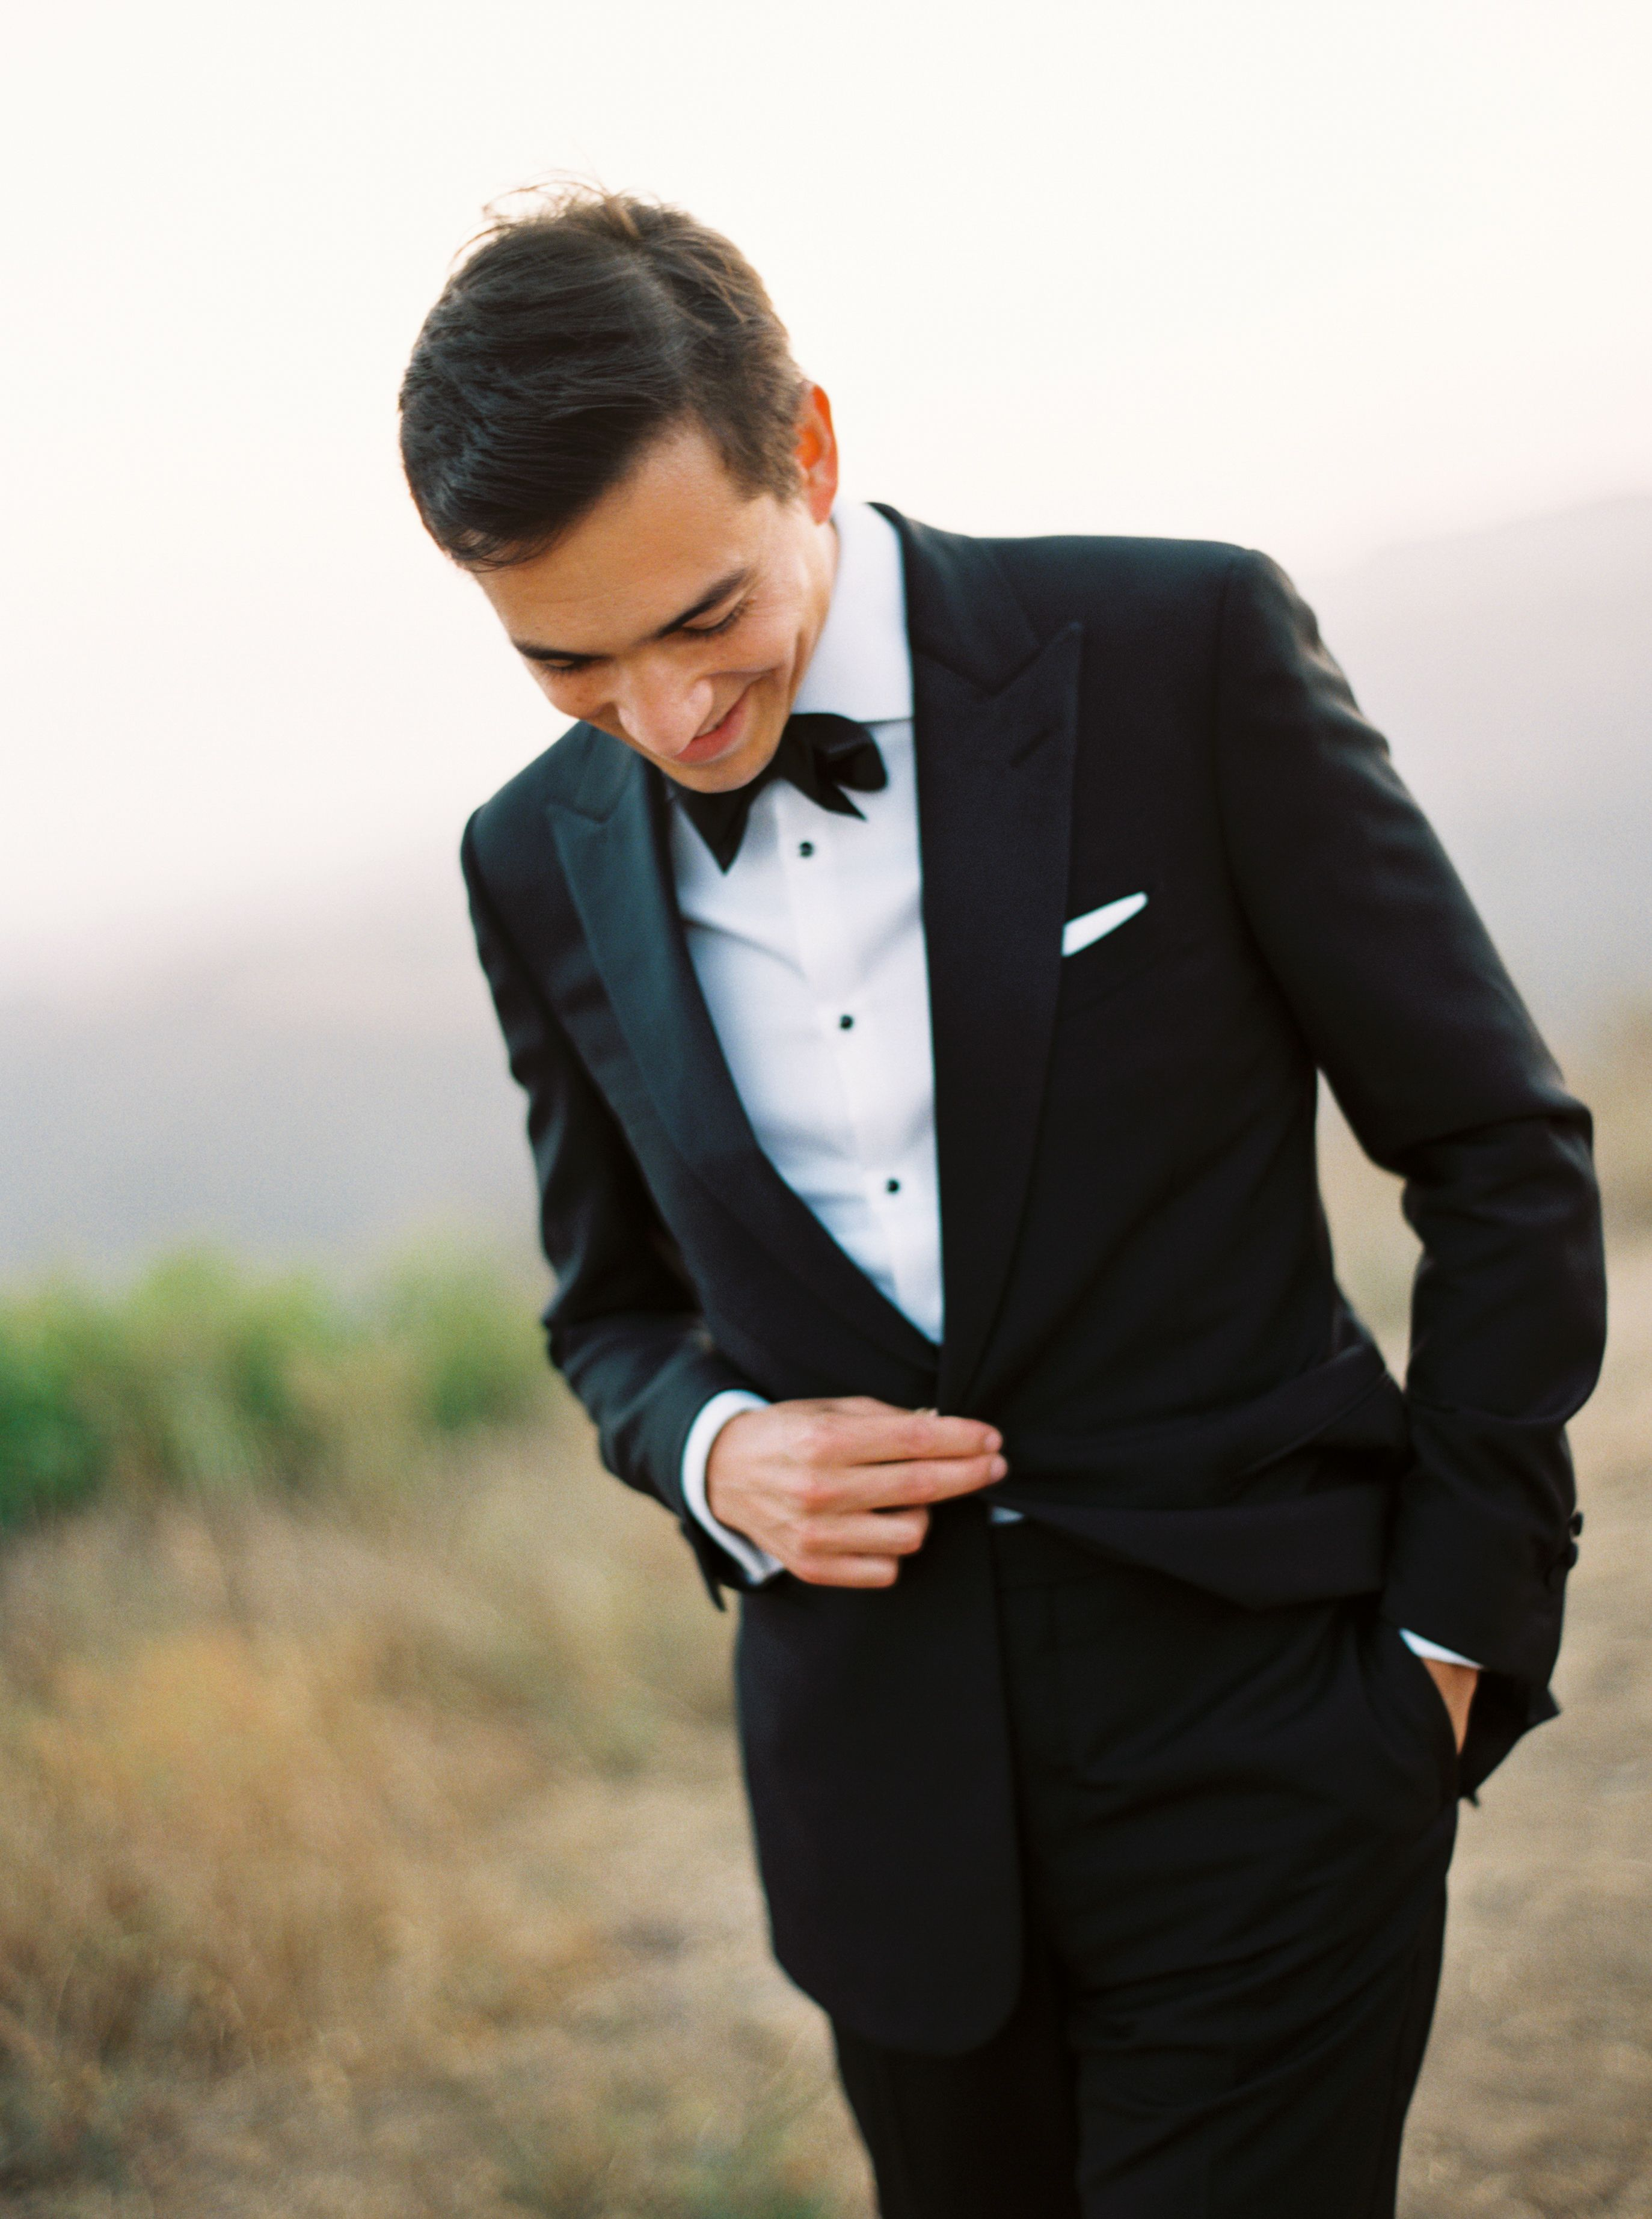 The 20 Best Gifts For Grooms In 2020